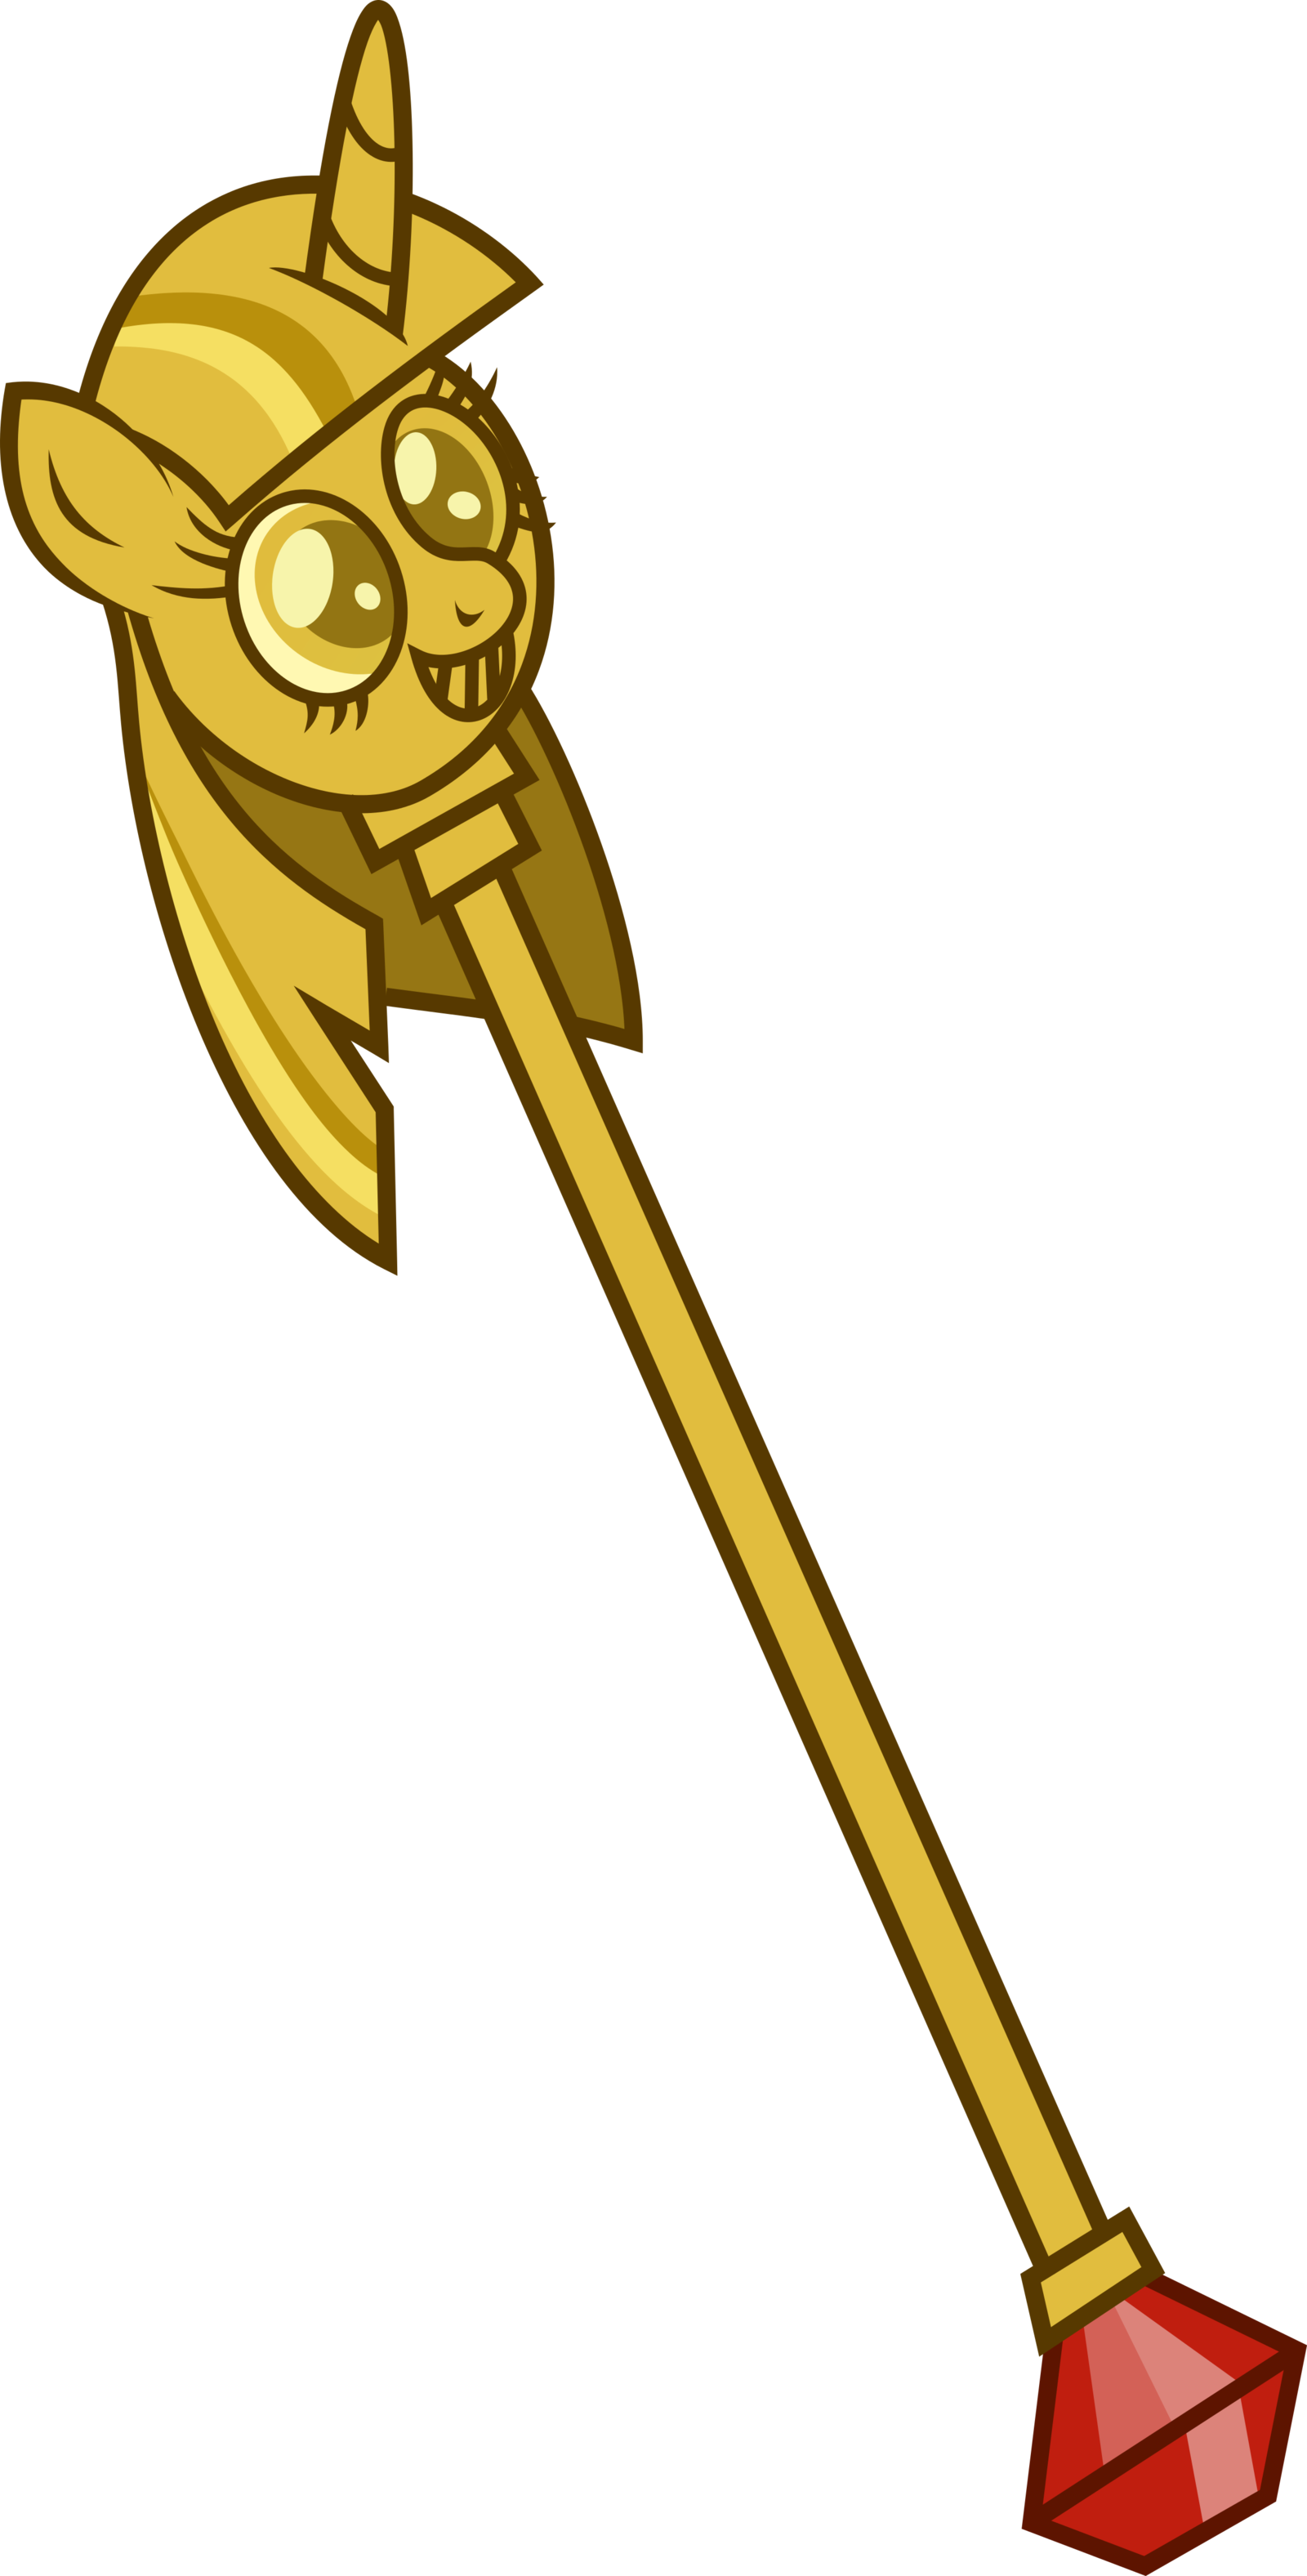 King scepter png. Scp containment is magic